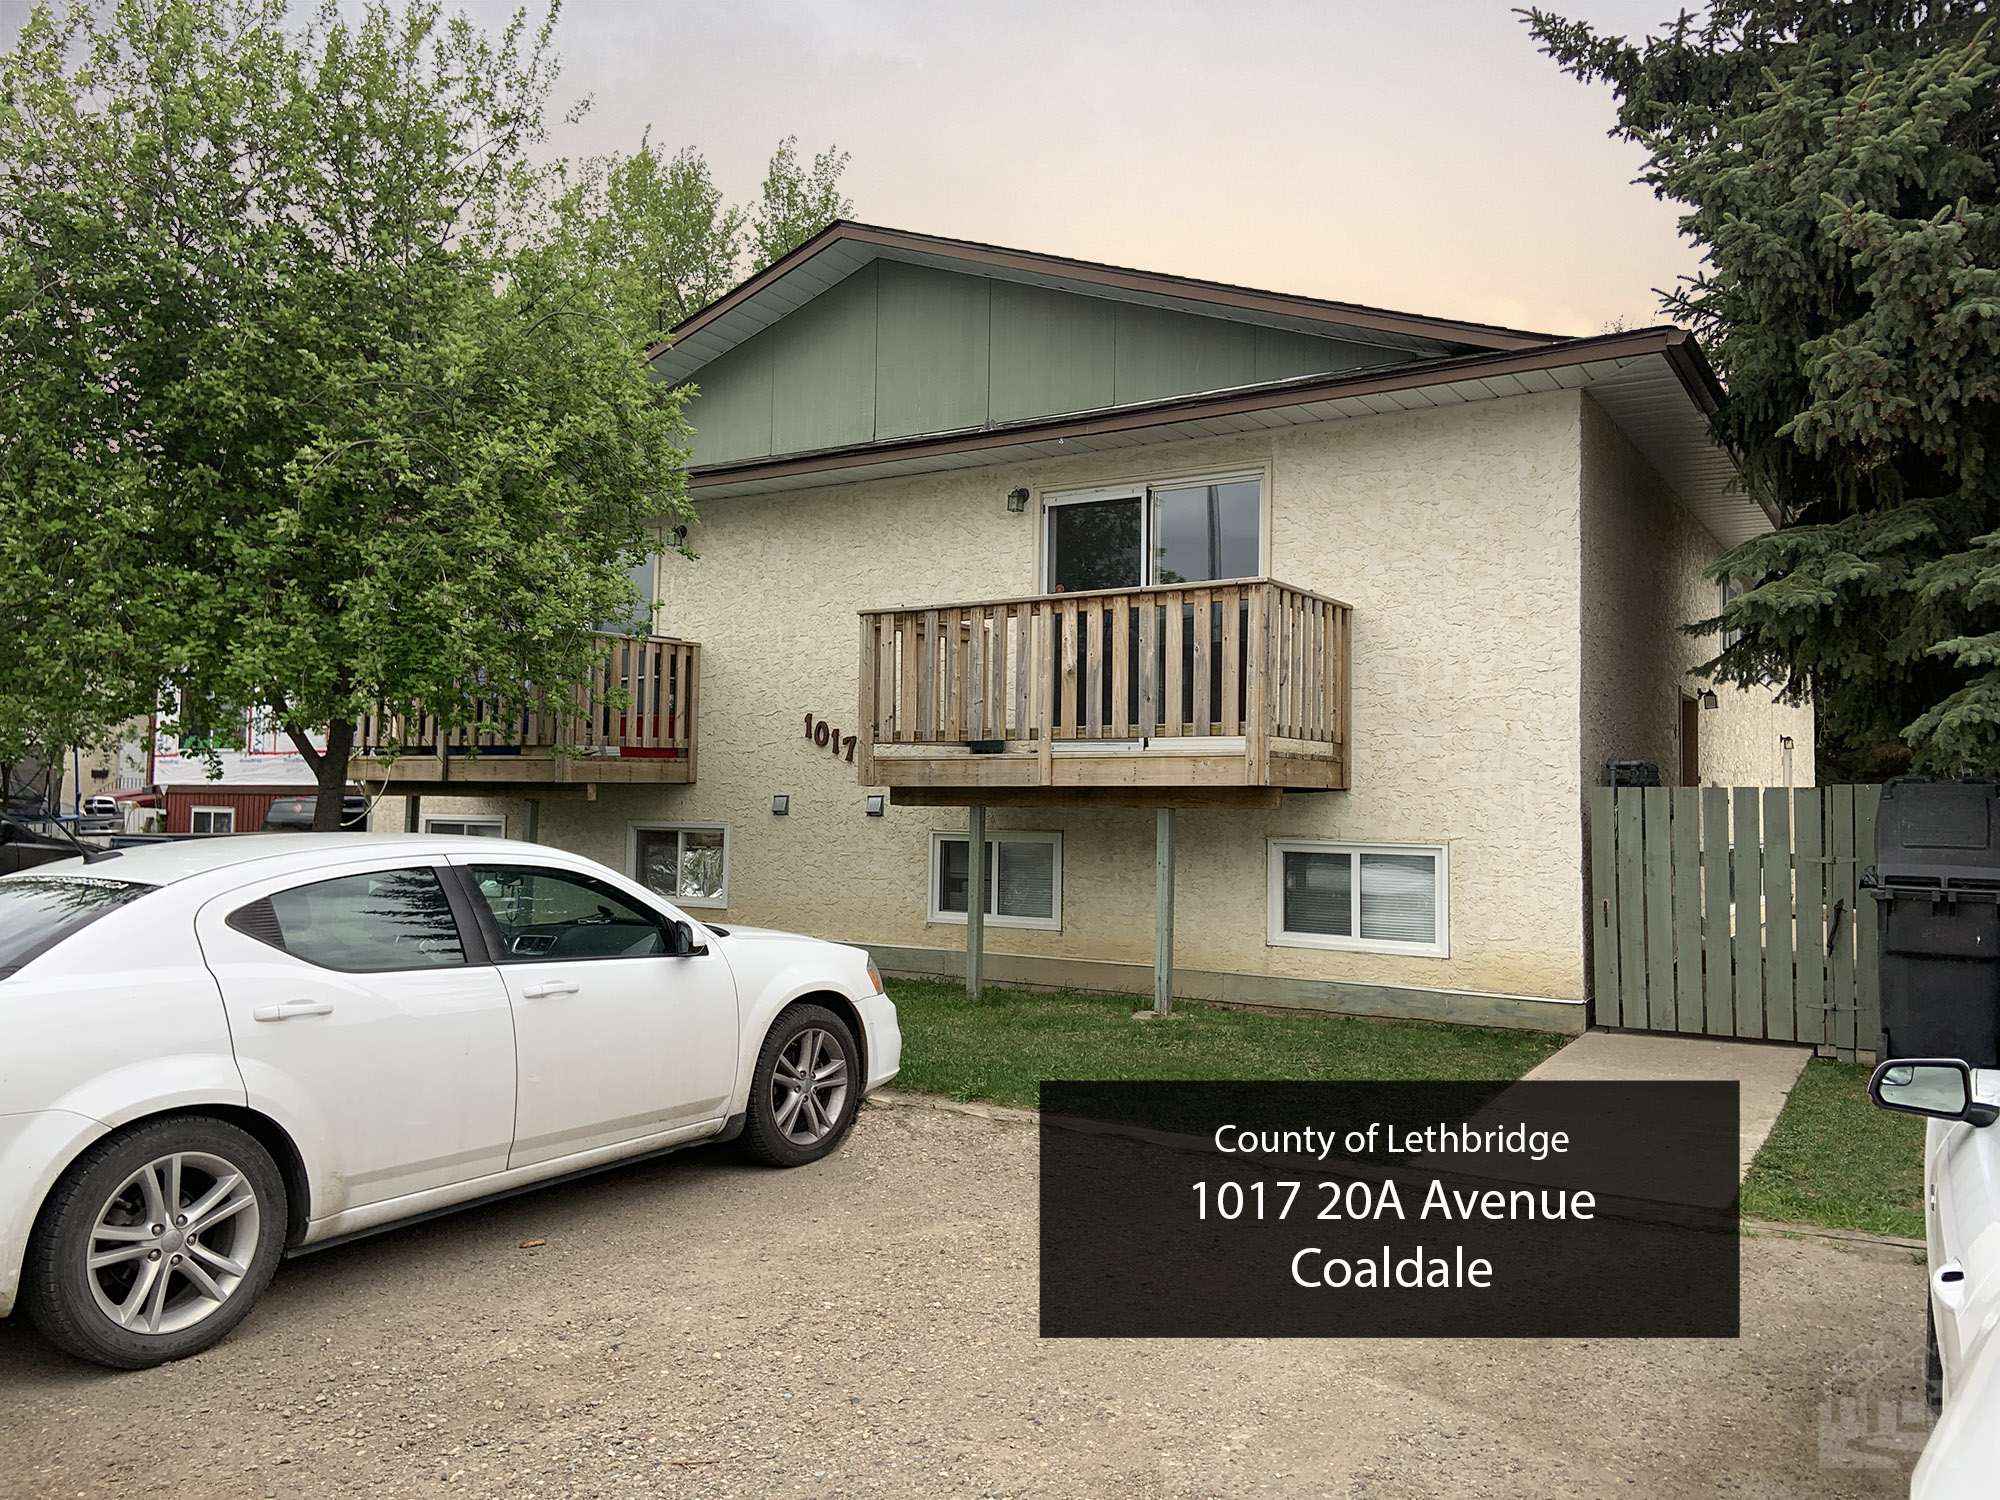 1017 20A Avenue Coaldale (Unit 3) Key Image